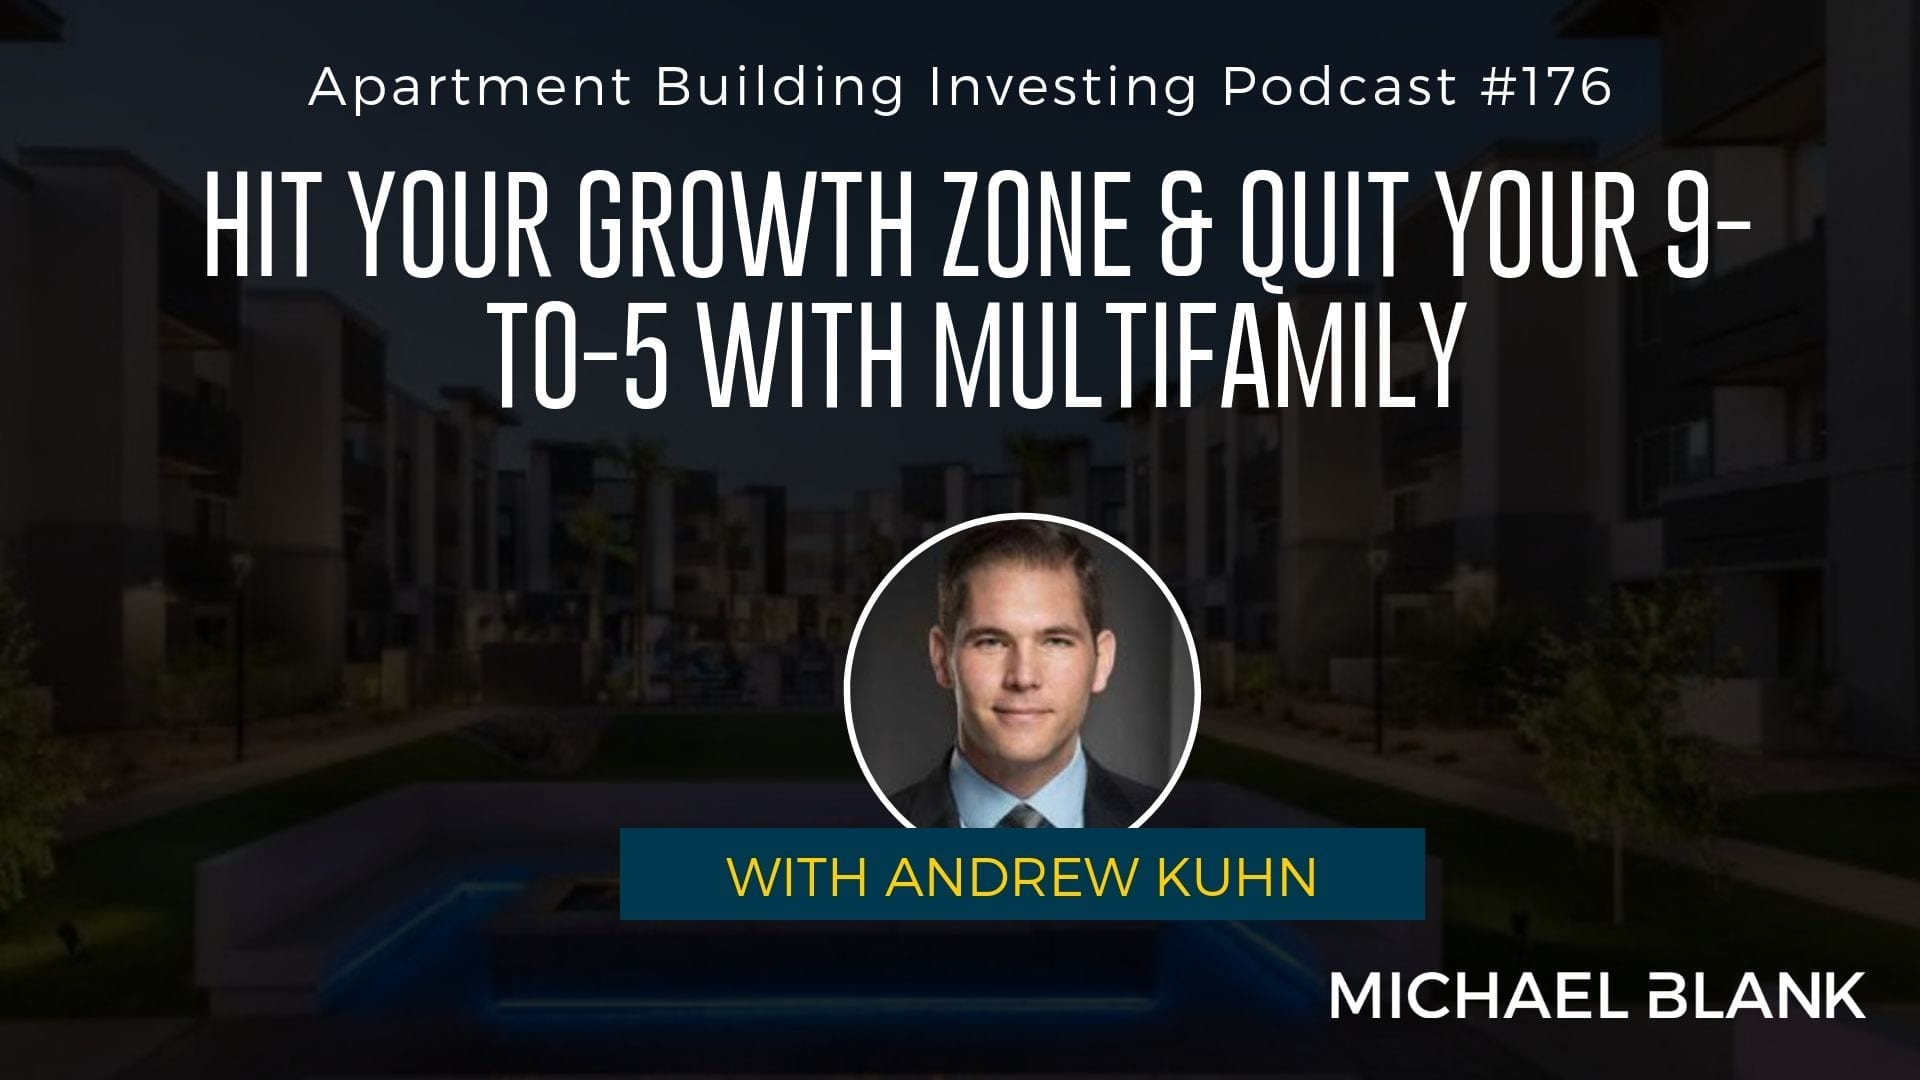 MB 176: Hit Your Growth Zone & Quit Your 9-to-5 with Multifamily – With Andrew Kuhn